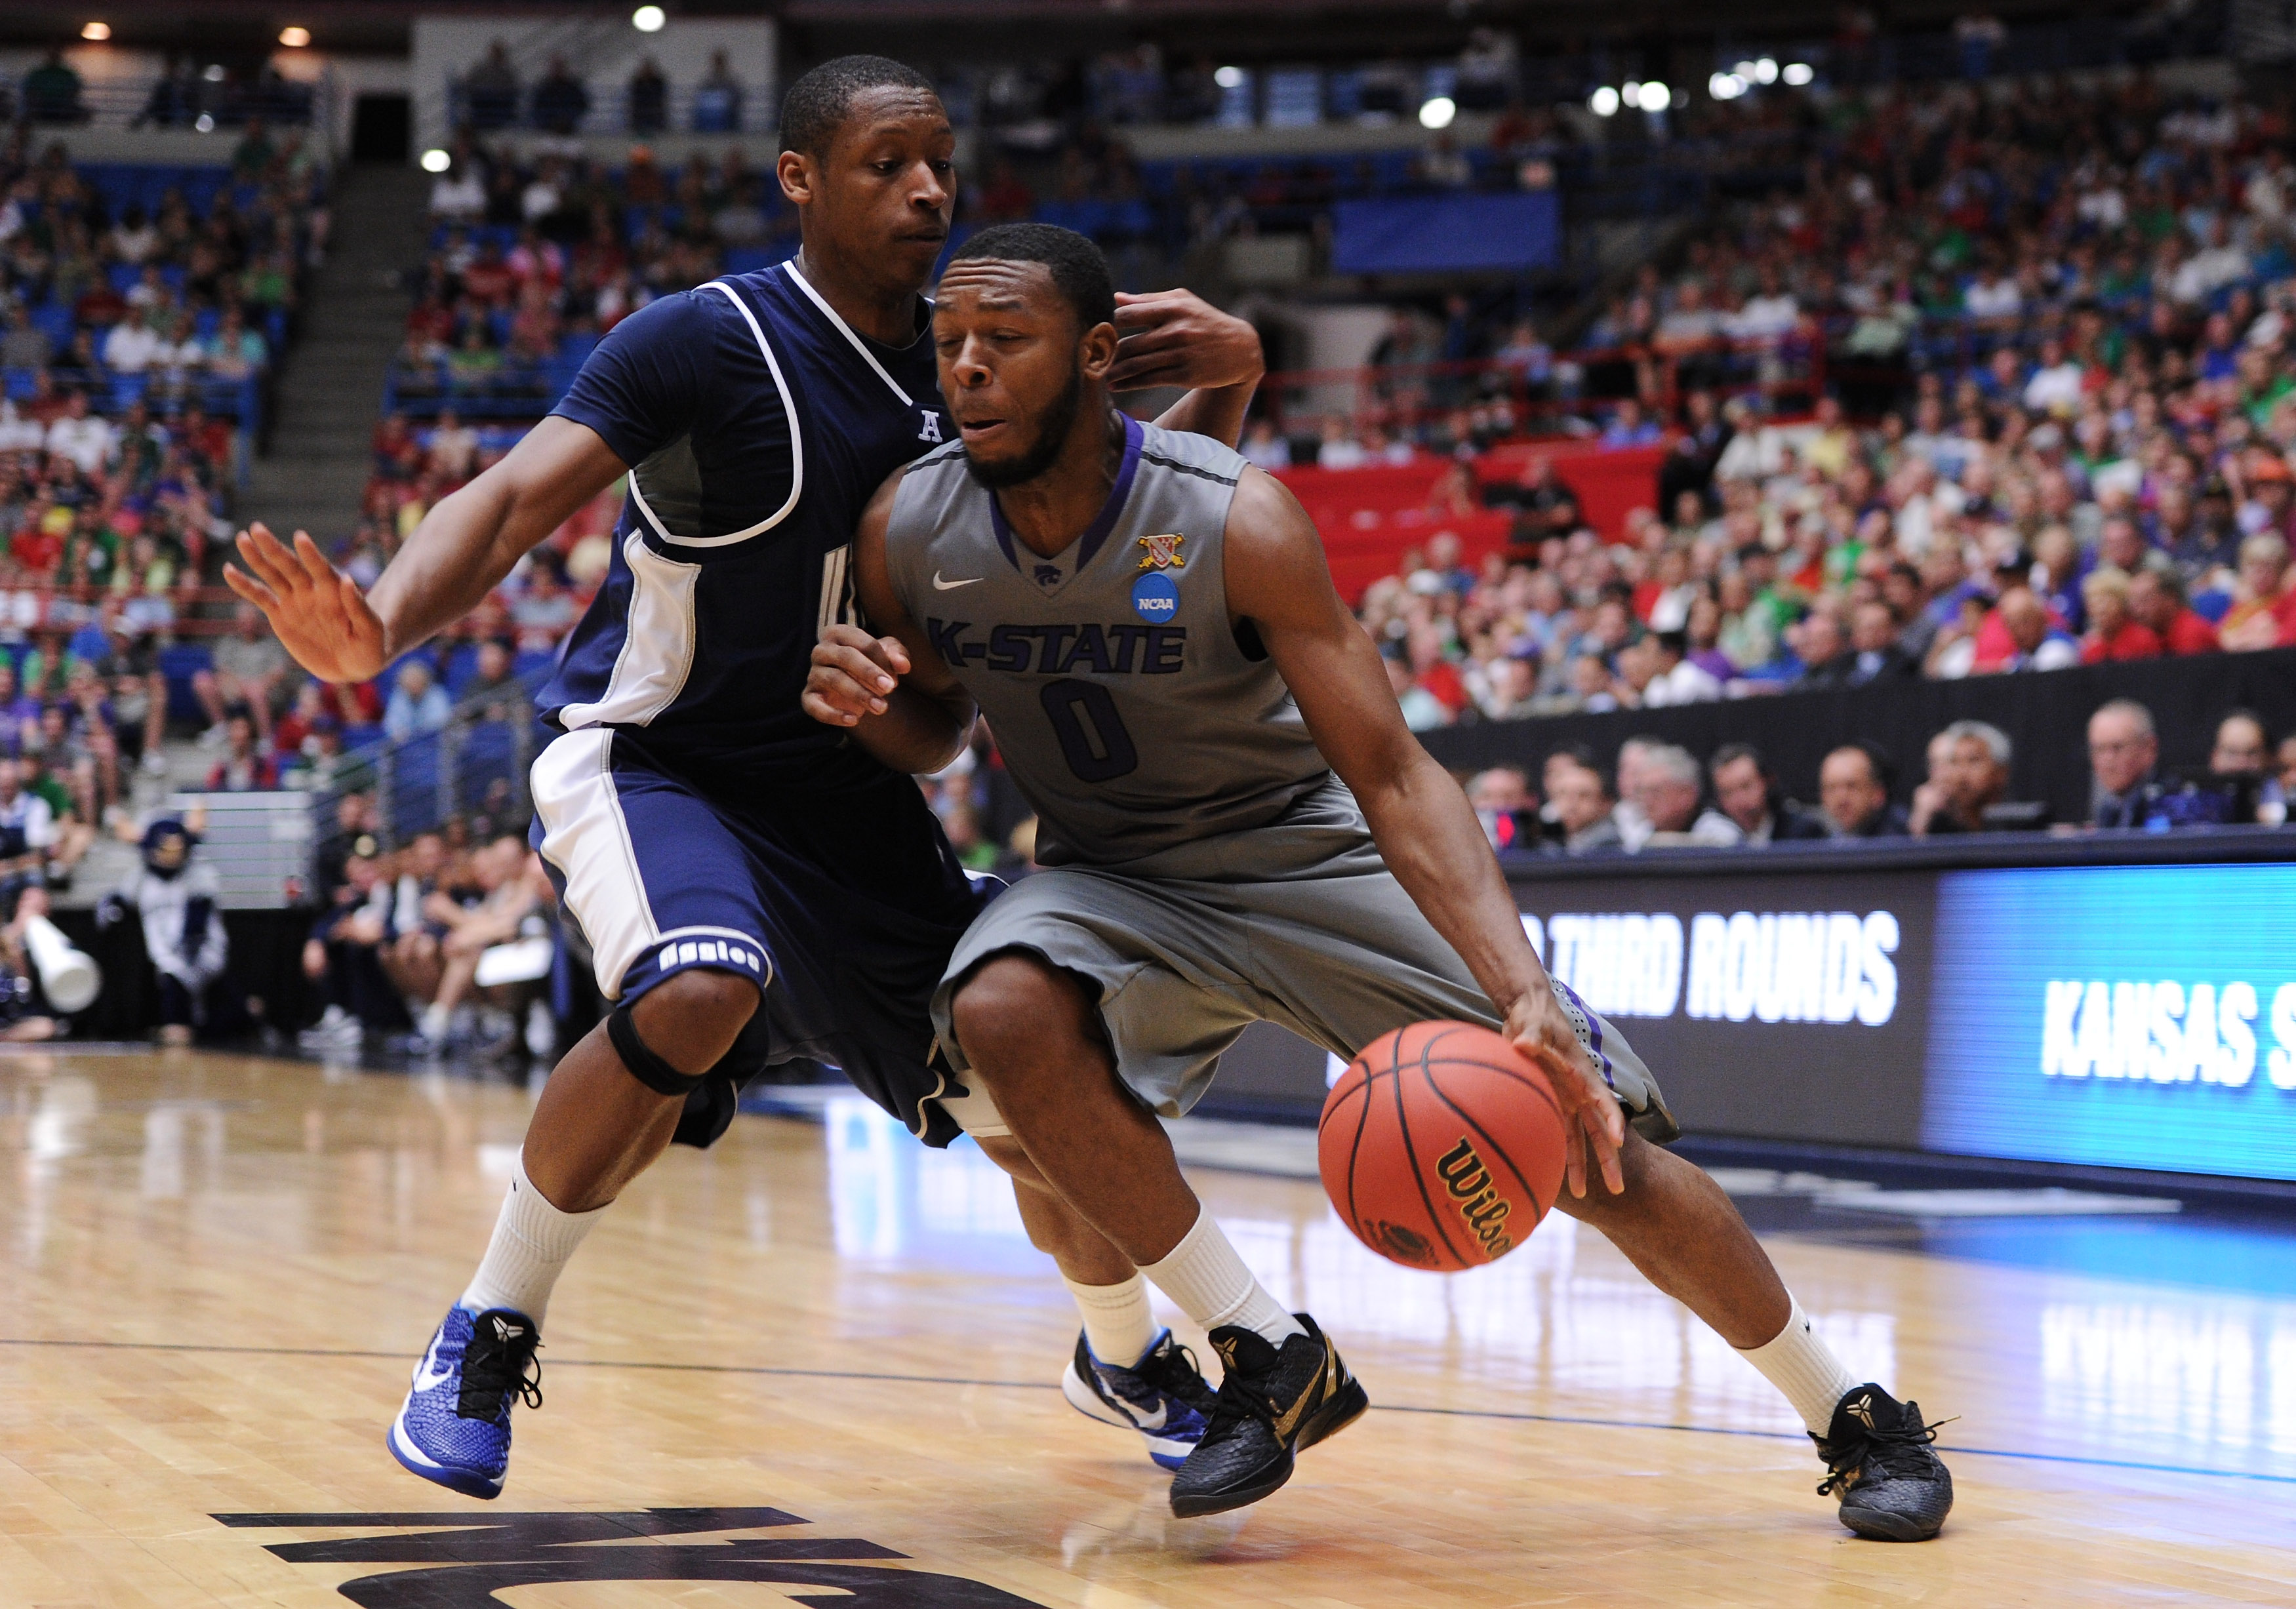 TUCSON, AZ - MARCH 17:  Jacob Pullen #0 of the Kansas State Wildcats drives against Pooh Williams #5 of the Utah State Aggies during the second round of the 2011 NCAA men's basketball tournament at McKale Center on March 17, 2011 in Tucson, Arizona.  (Pho